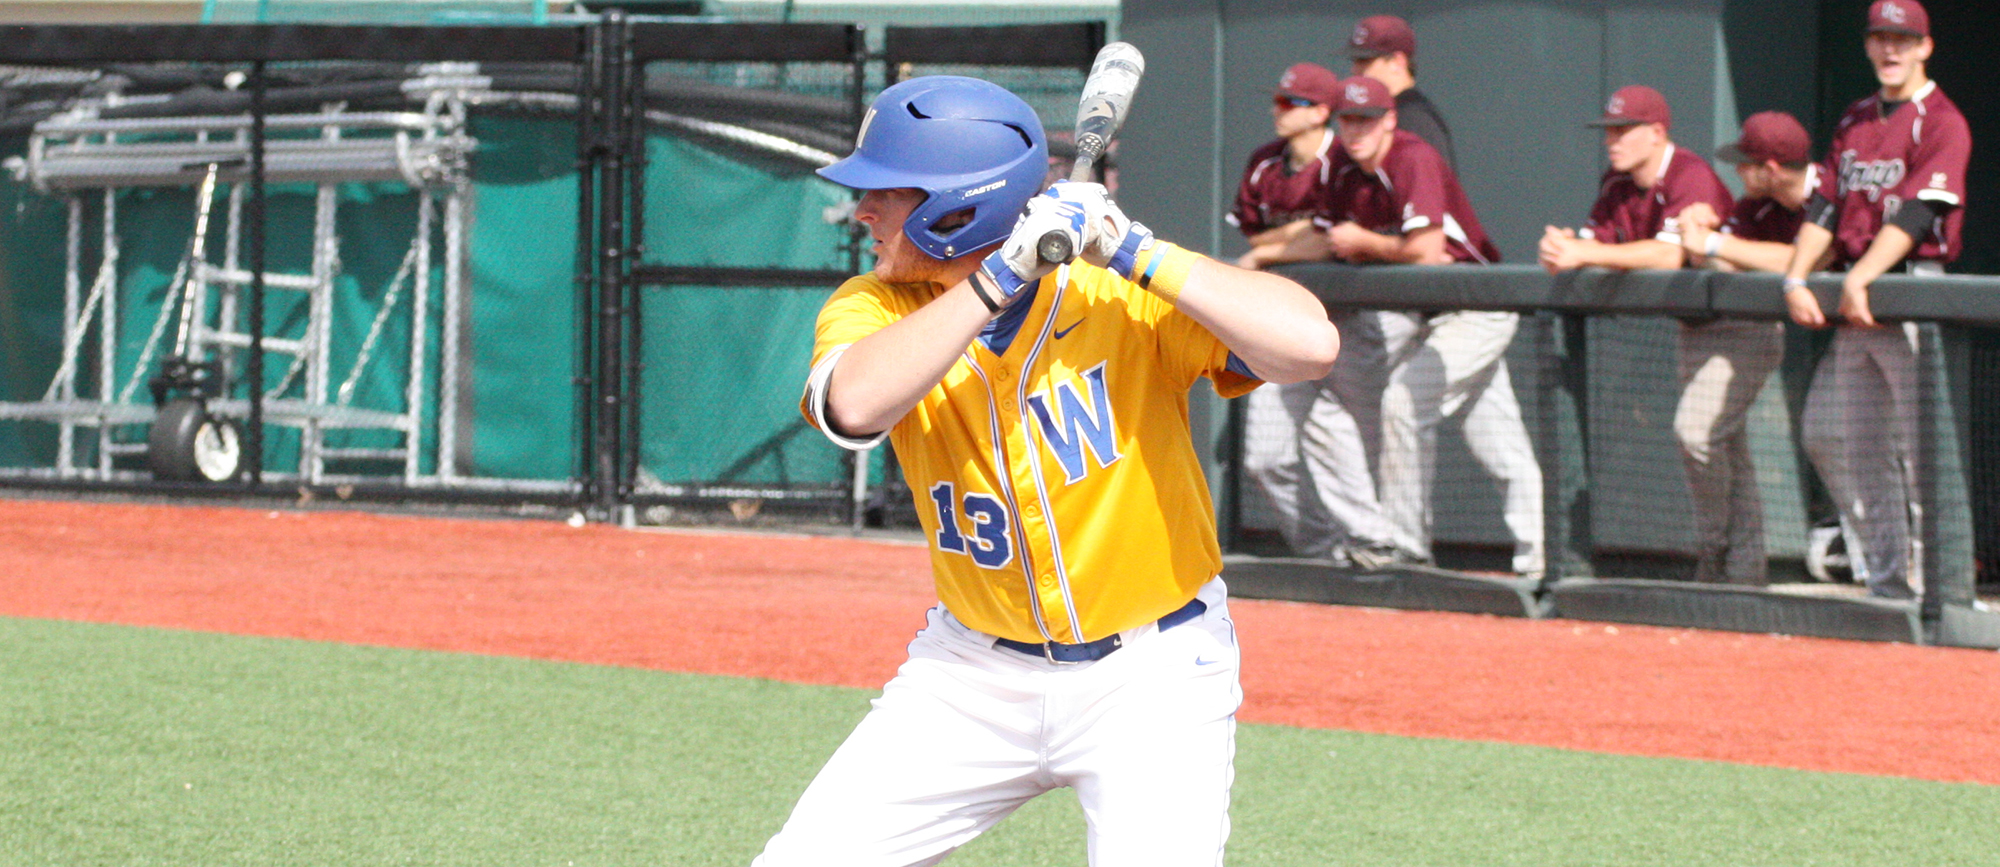 Western New England and Ramapo combined for 34 runs and 36 hits in Thursday's NCAA Tournament contest at UMass Boston. (Photo by Jeff Rosenblatt)